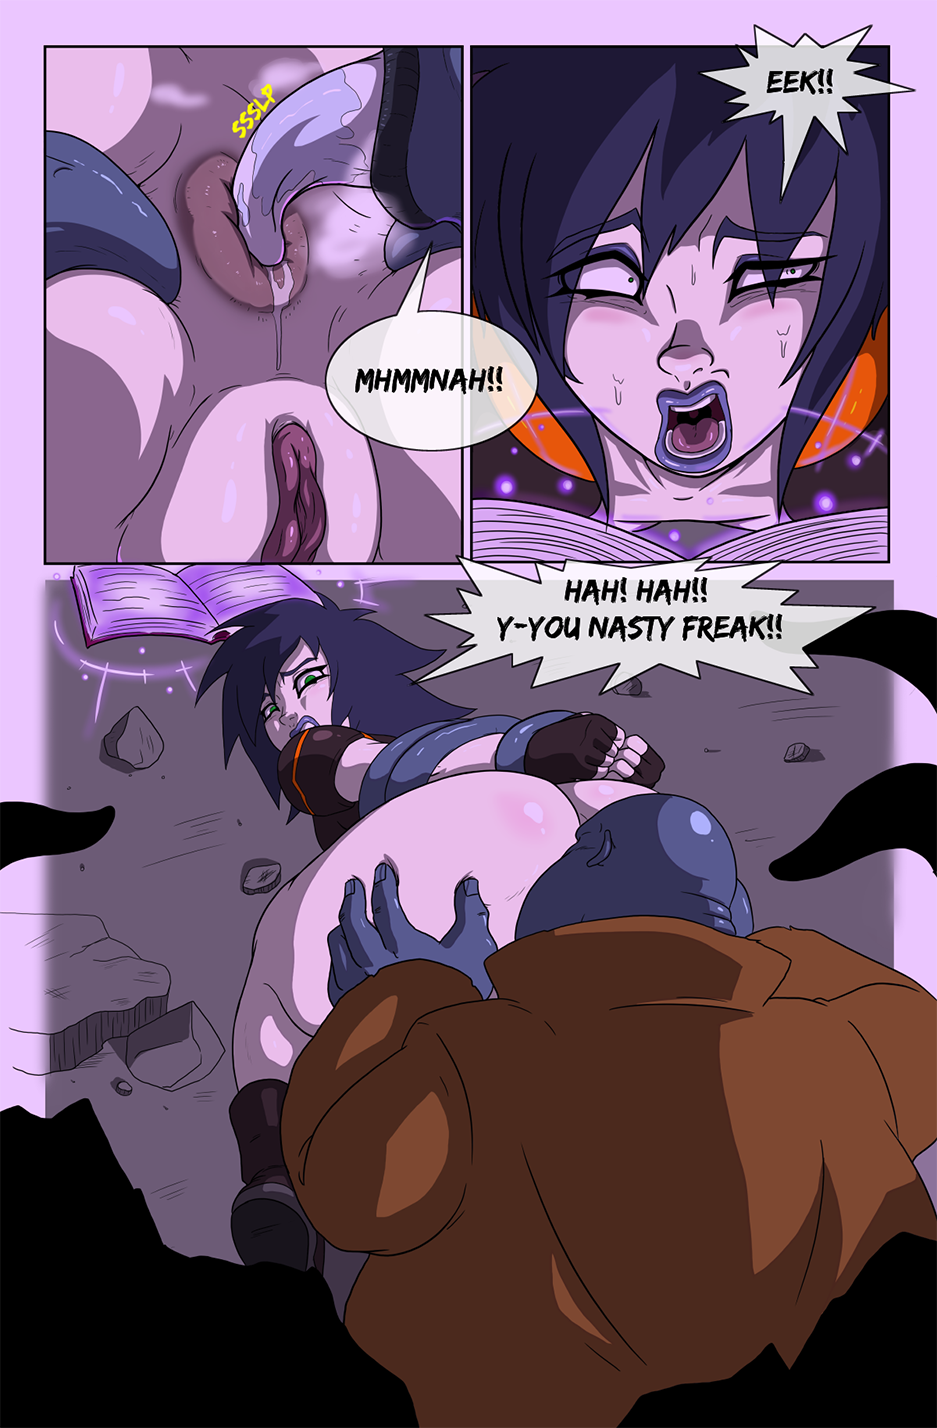 Ghostbusters Extreme Para-Porno porn comics Oral sex, Anal Sex, Blowjob, Creampie, cunnilingus, Double Penetration, Rape, Sex and Magic, Straight, Tentacles, X-Ray